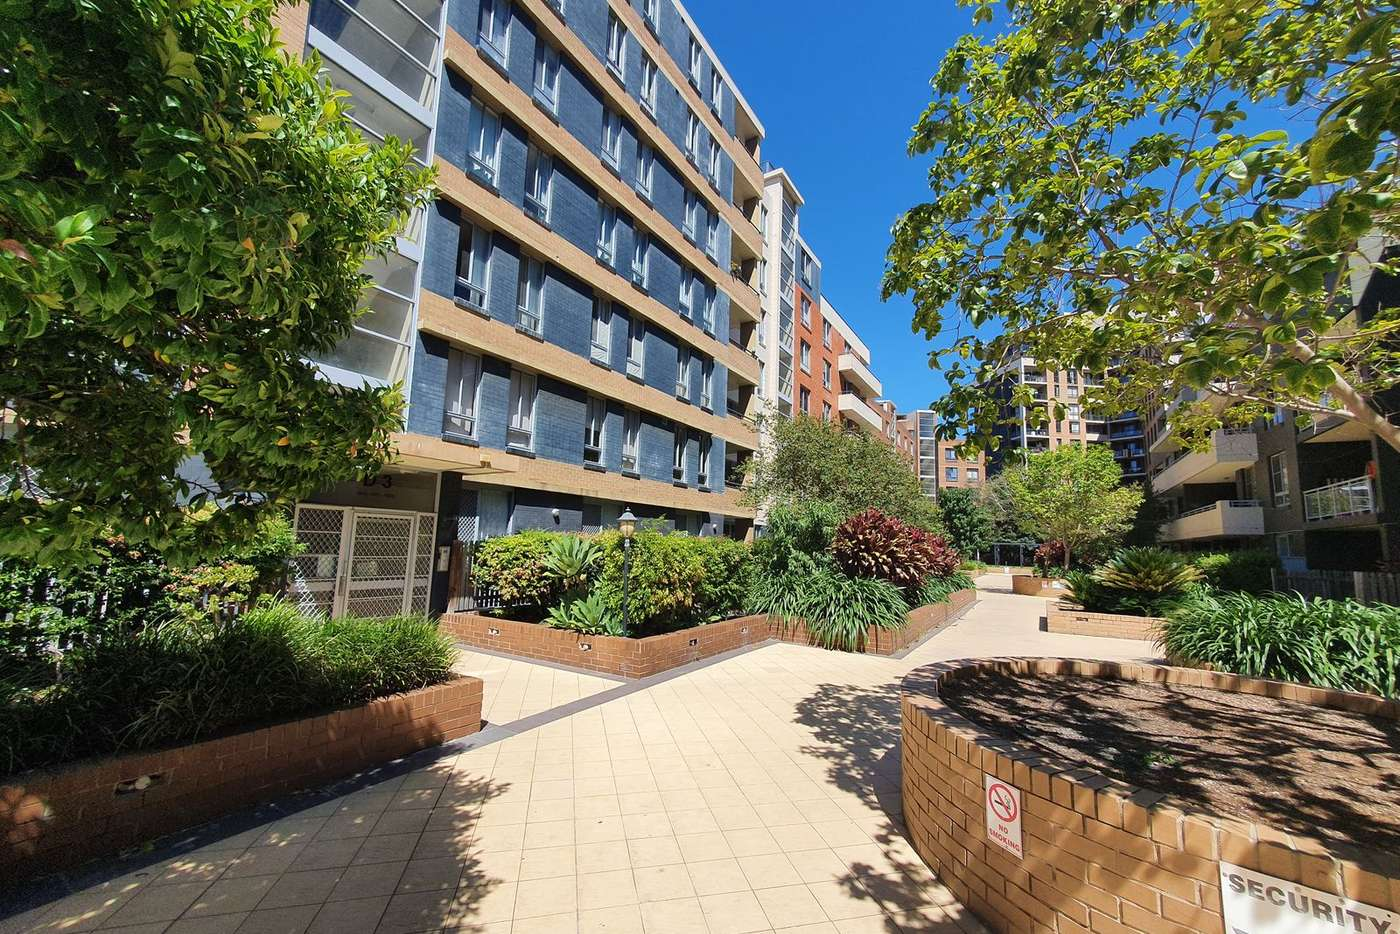 Main view of Homely unit listing, 4307/57-59 Queen Street, Auburn NSW 2144